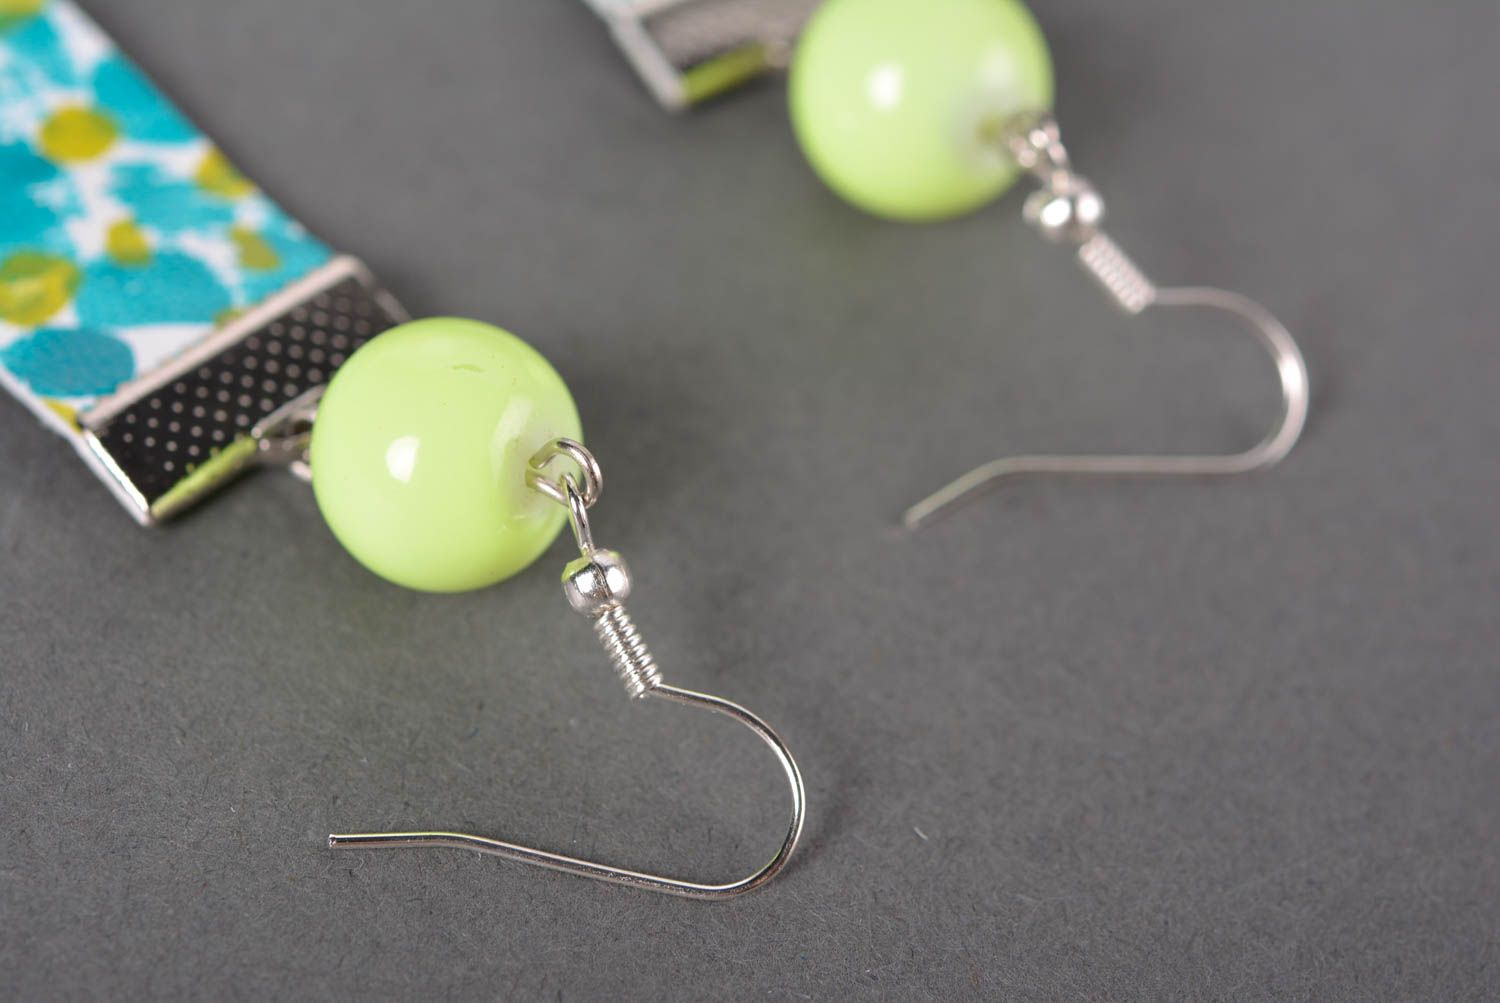 Stylish handmade leather earrings costume jewelry designs gifts for her photo 5